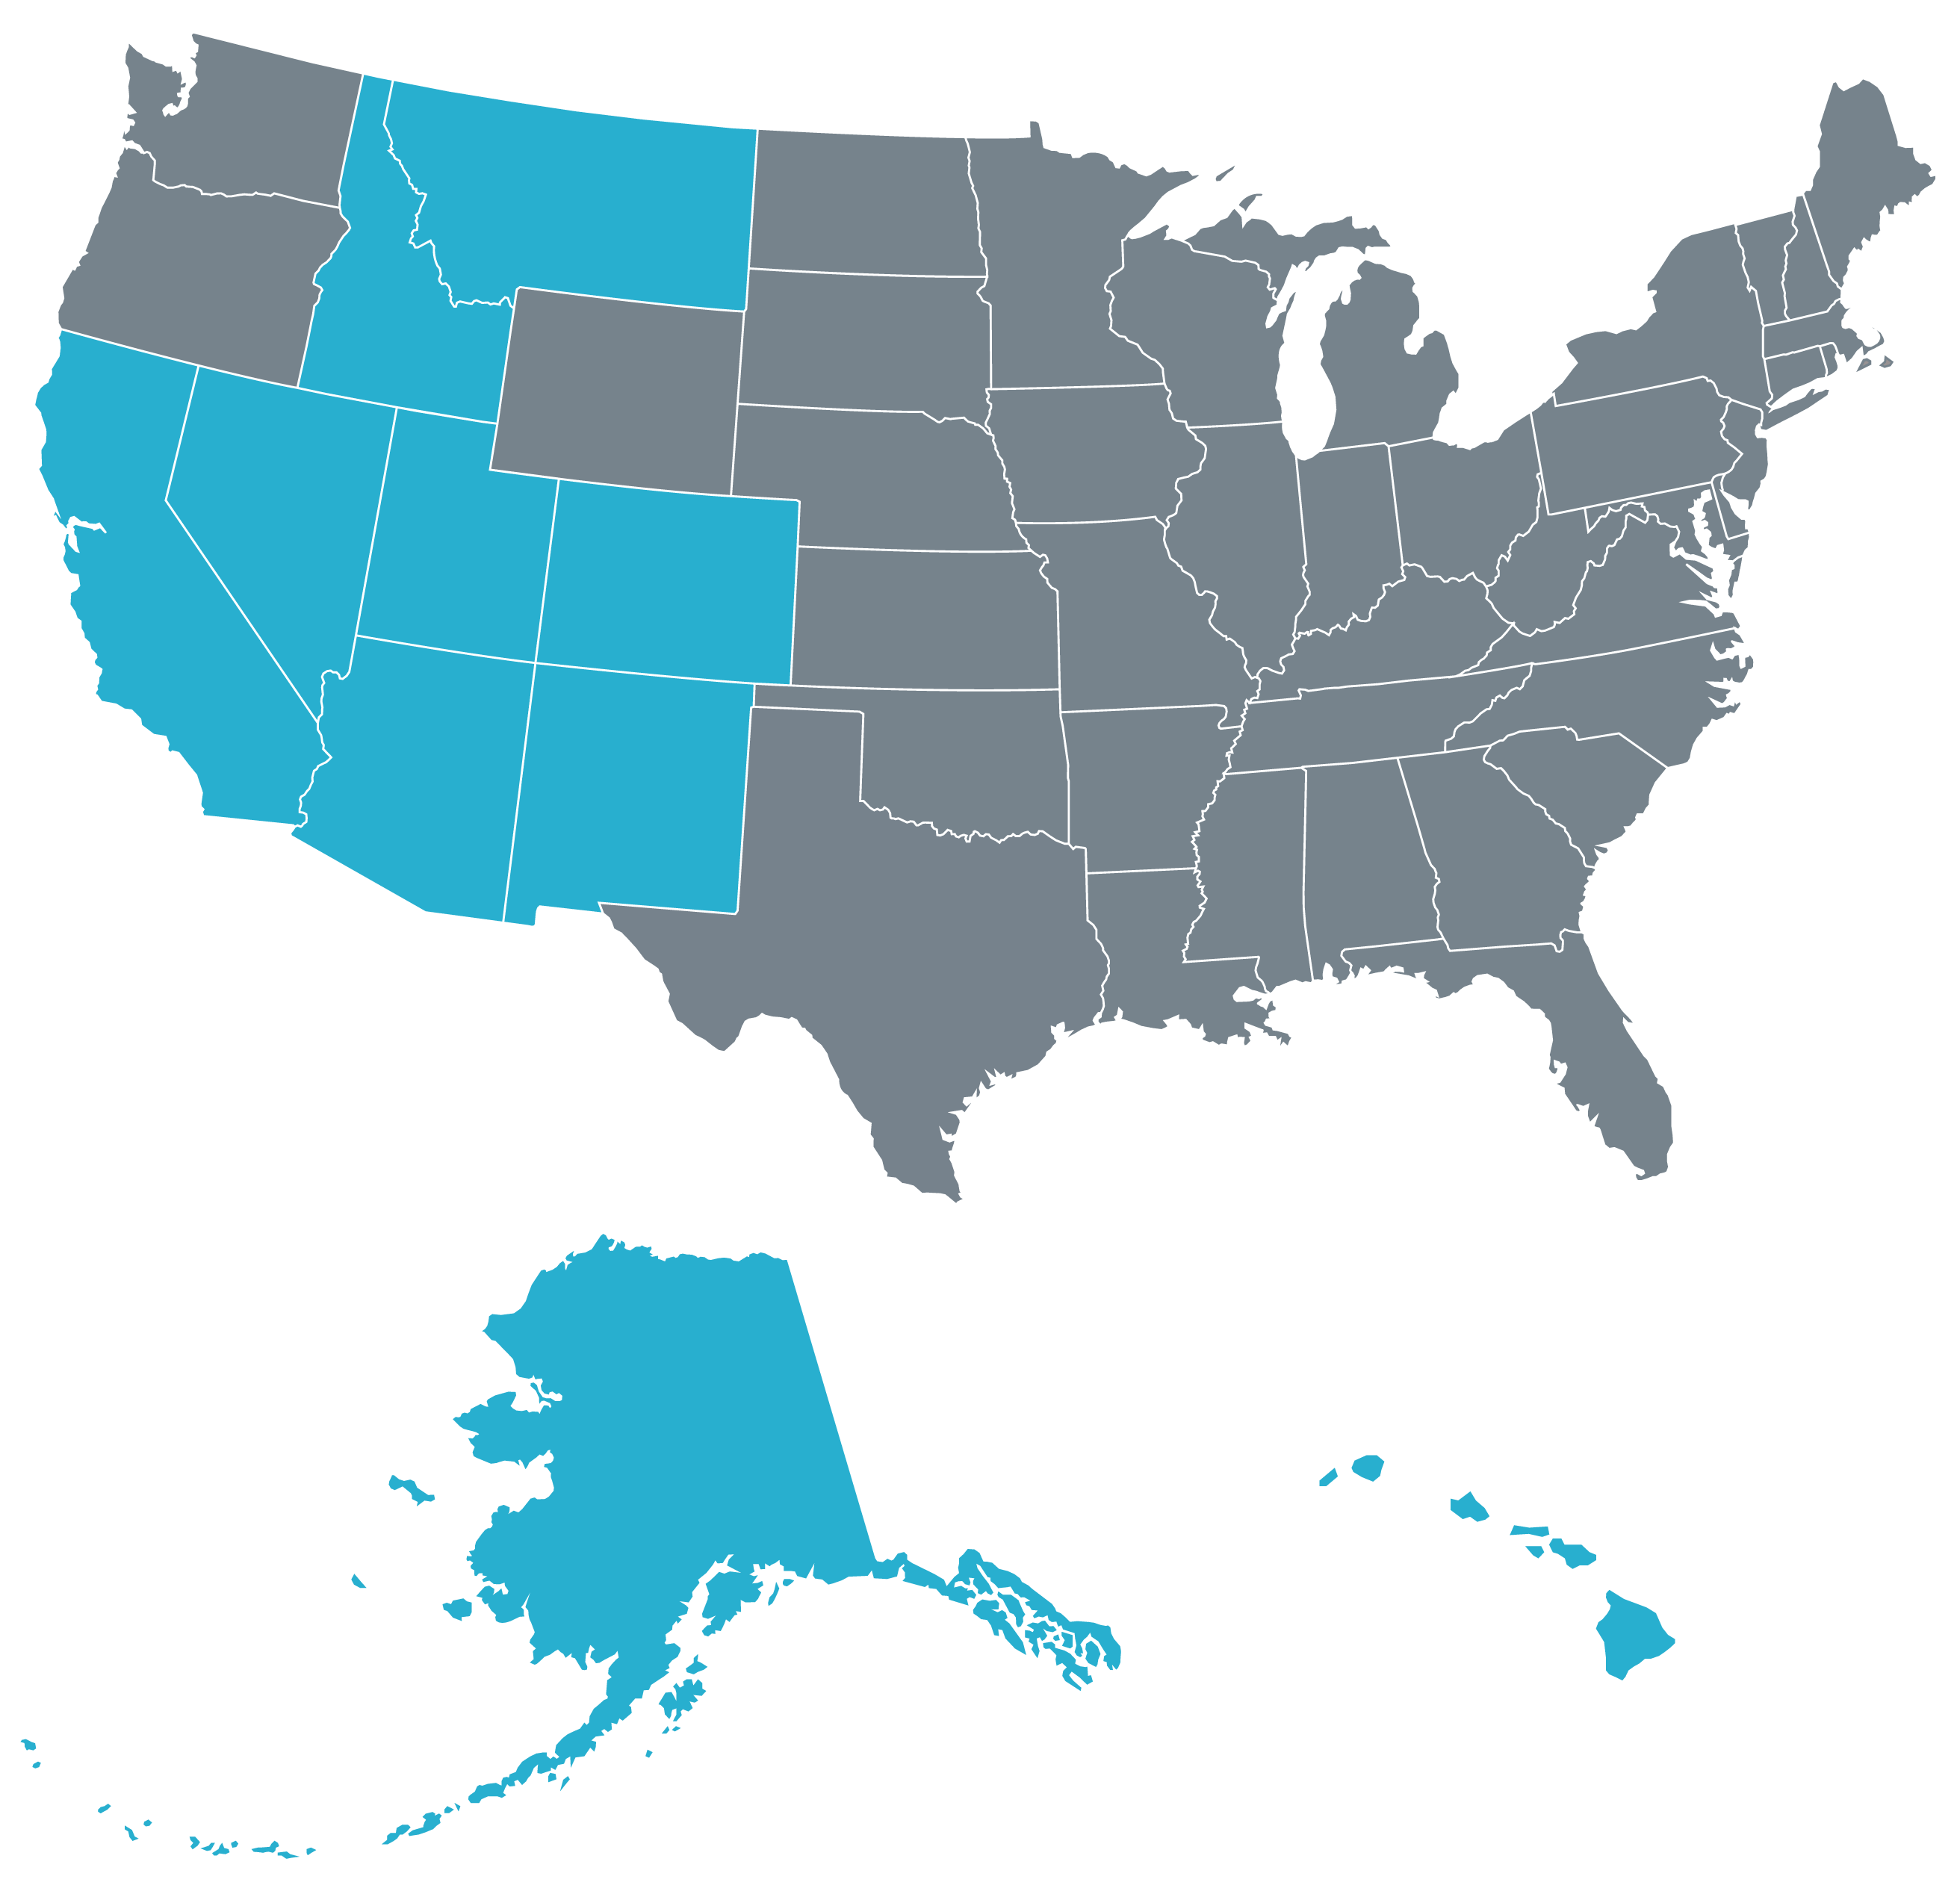 ASAP map of the United States